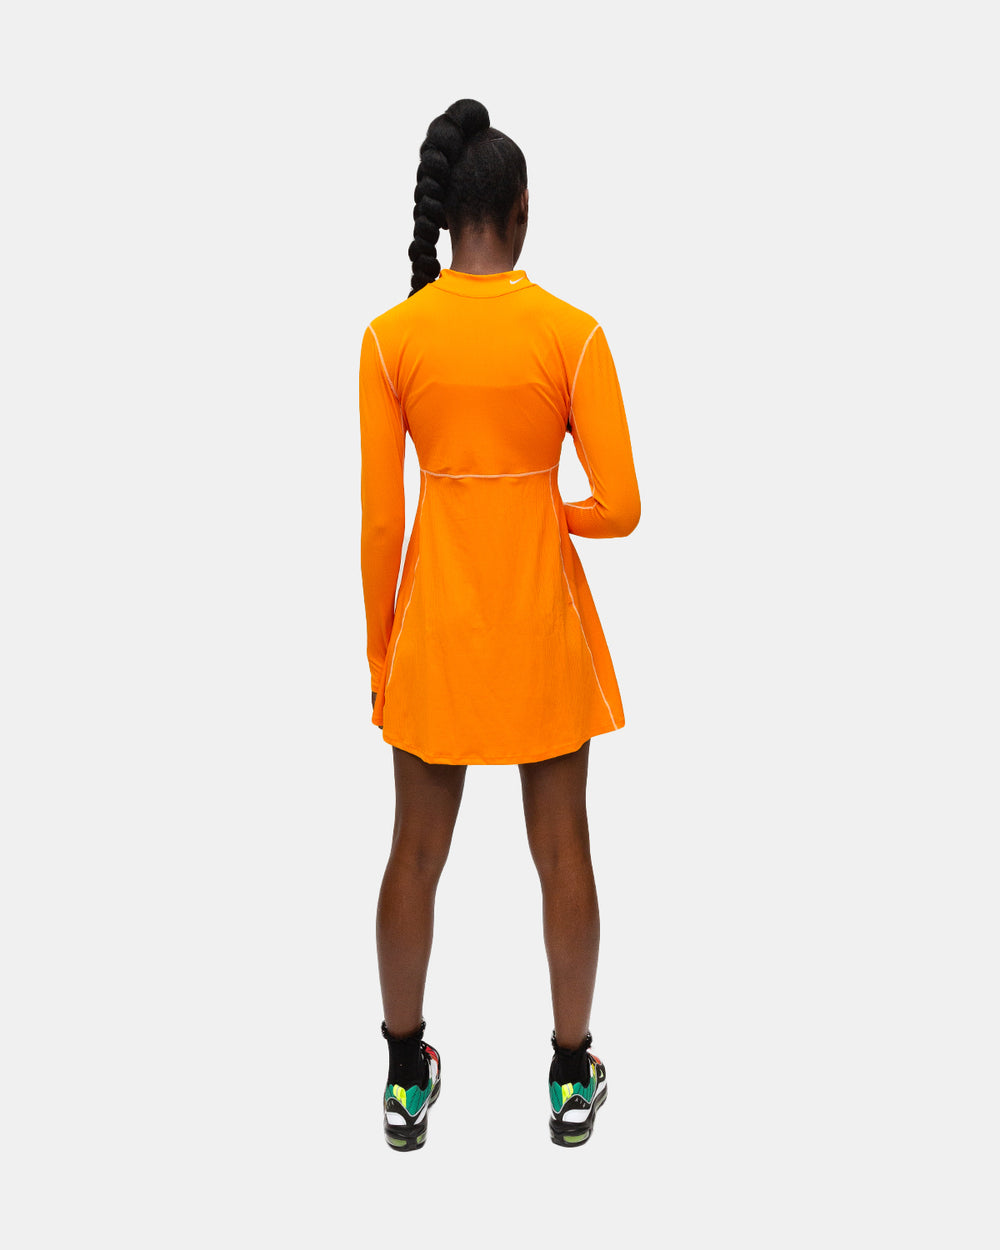 Nike - Women's Nike x Olivia Kim Tennis Dress (Bright Ceramic)